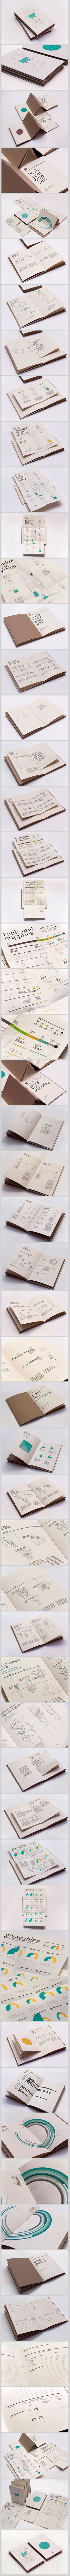 Window Farms: Information Design Book by Jiani Lu